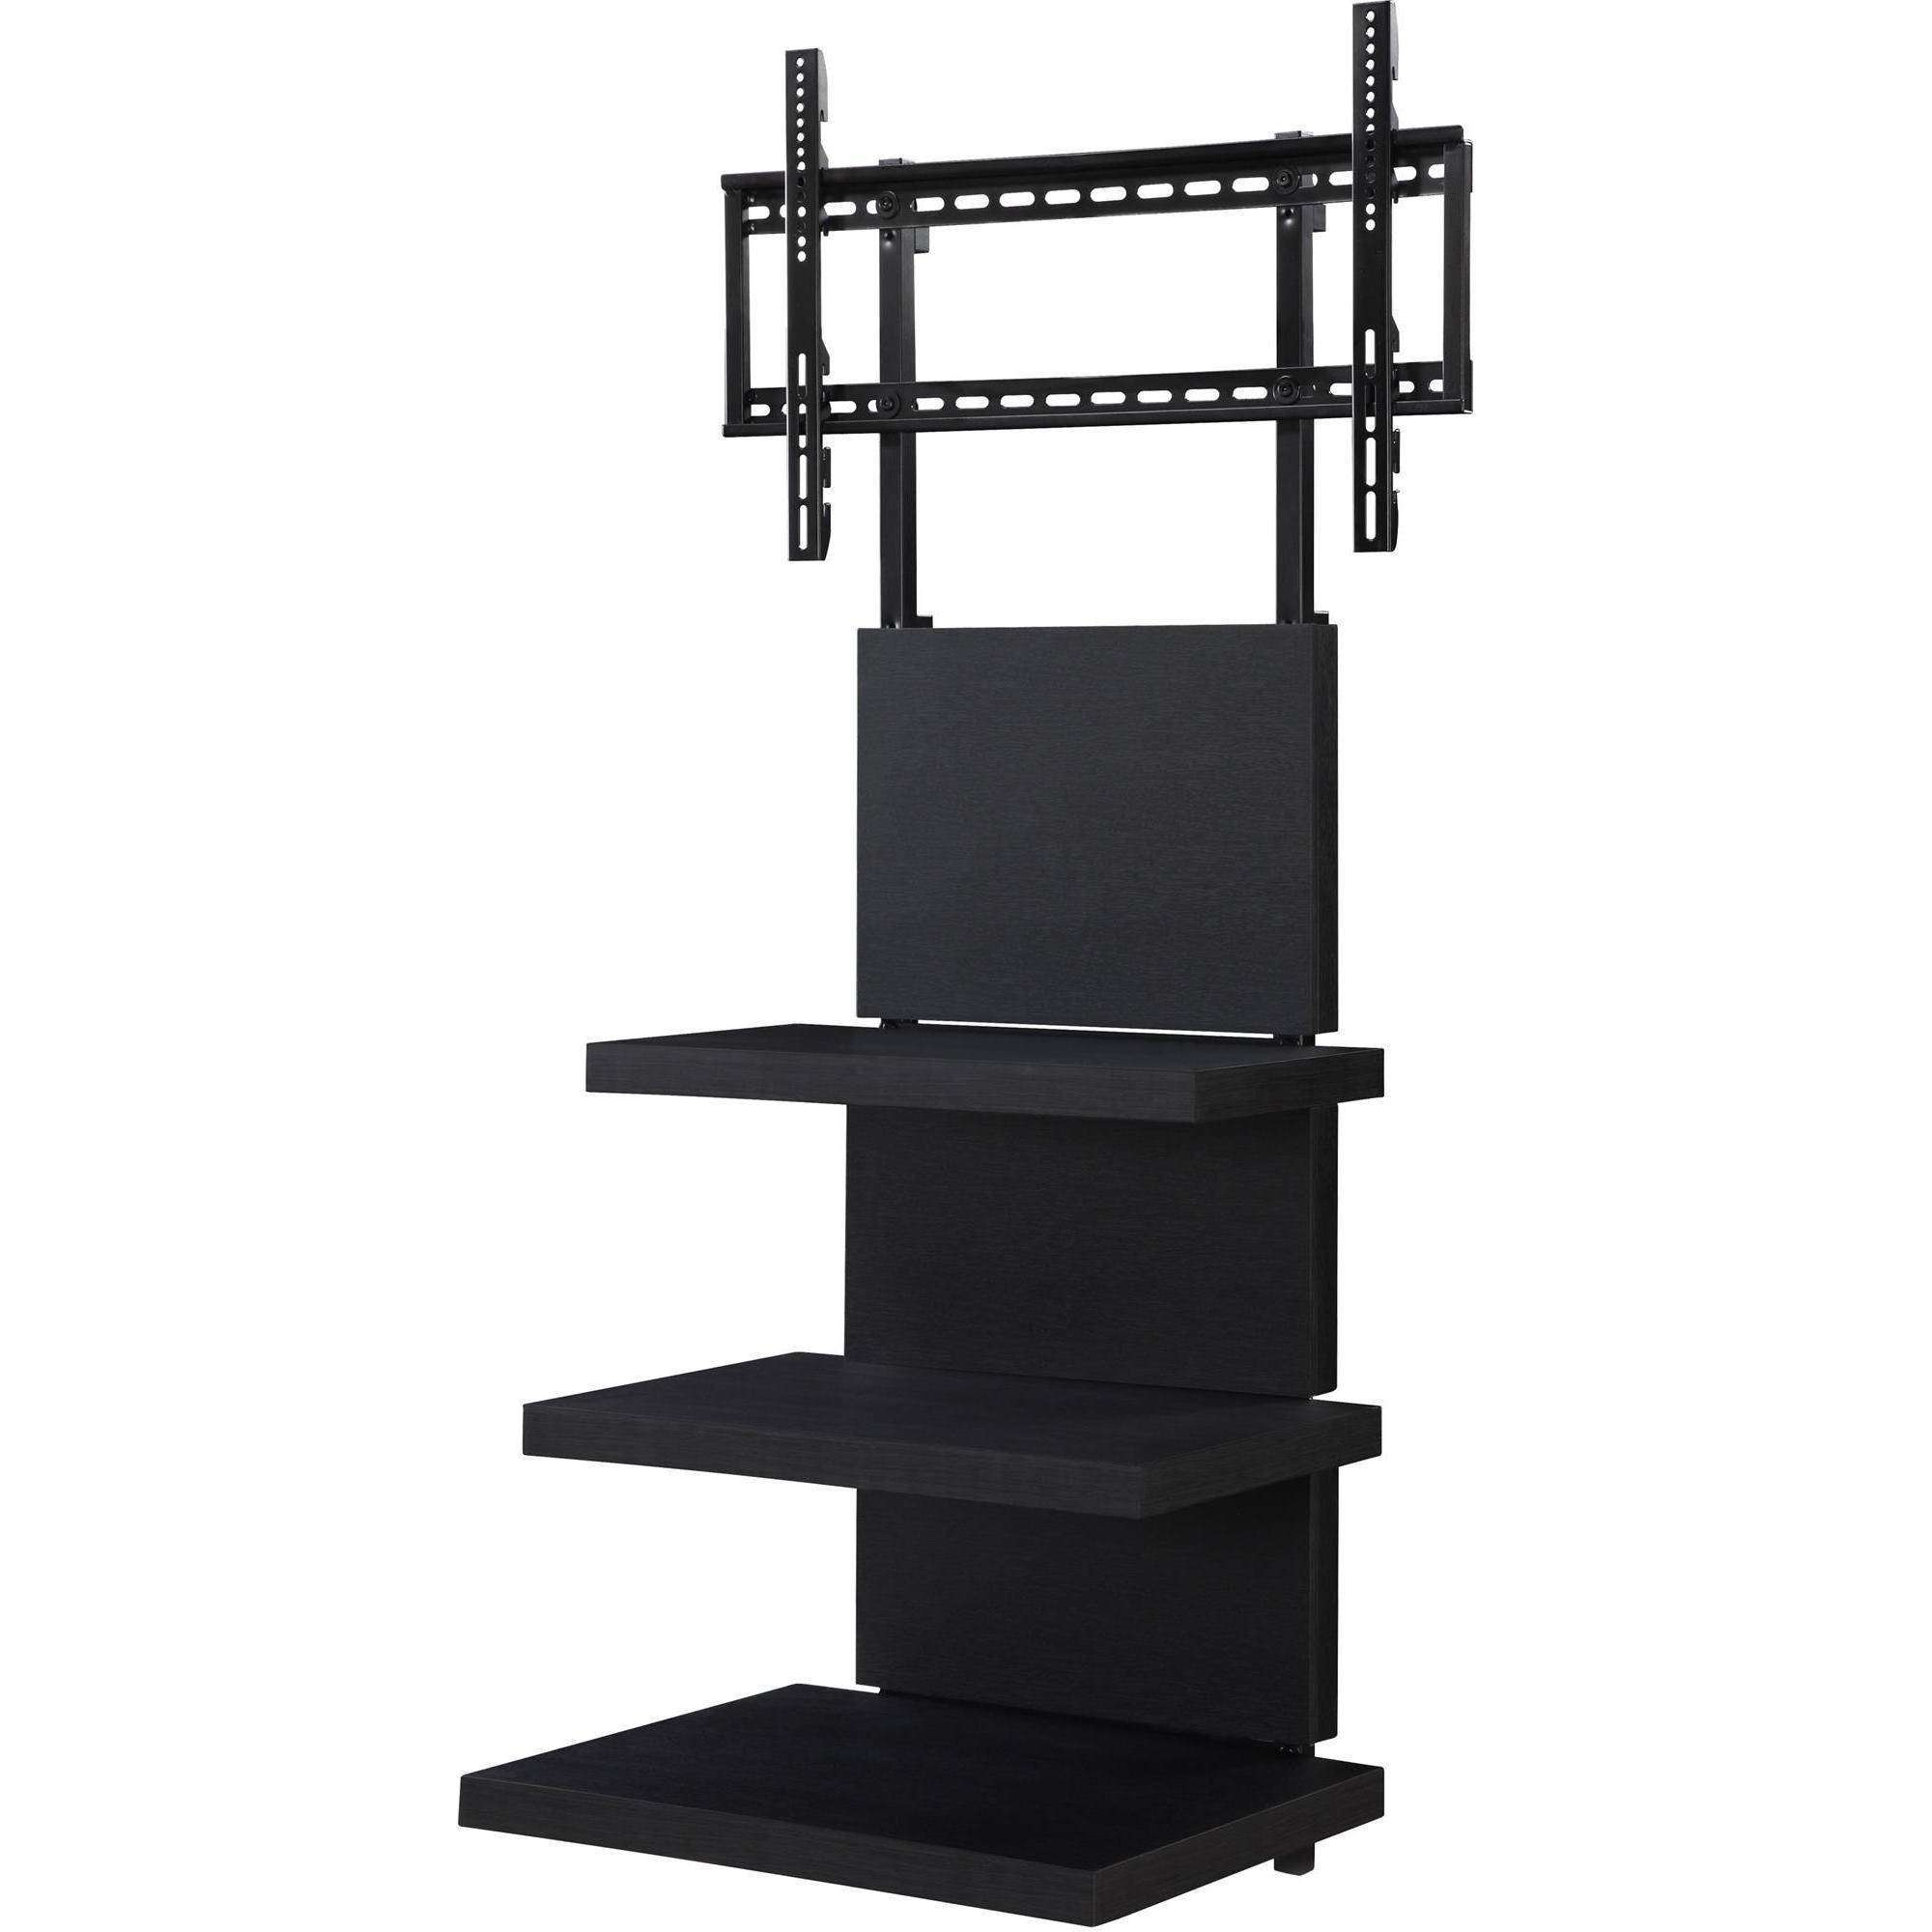 Table : Dhlwztpuviibtdgfuzcbxaxroie Amazing Wall Mount Adjustable In Wall Mount Adjustable Tv Stands (View 13 of 20)